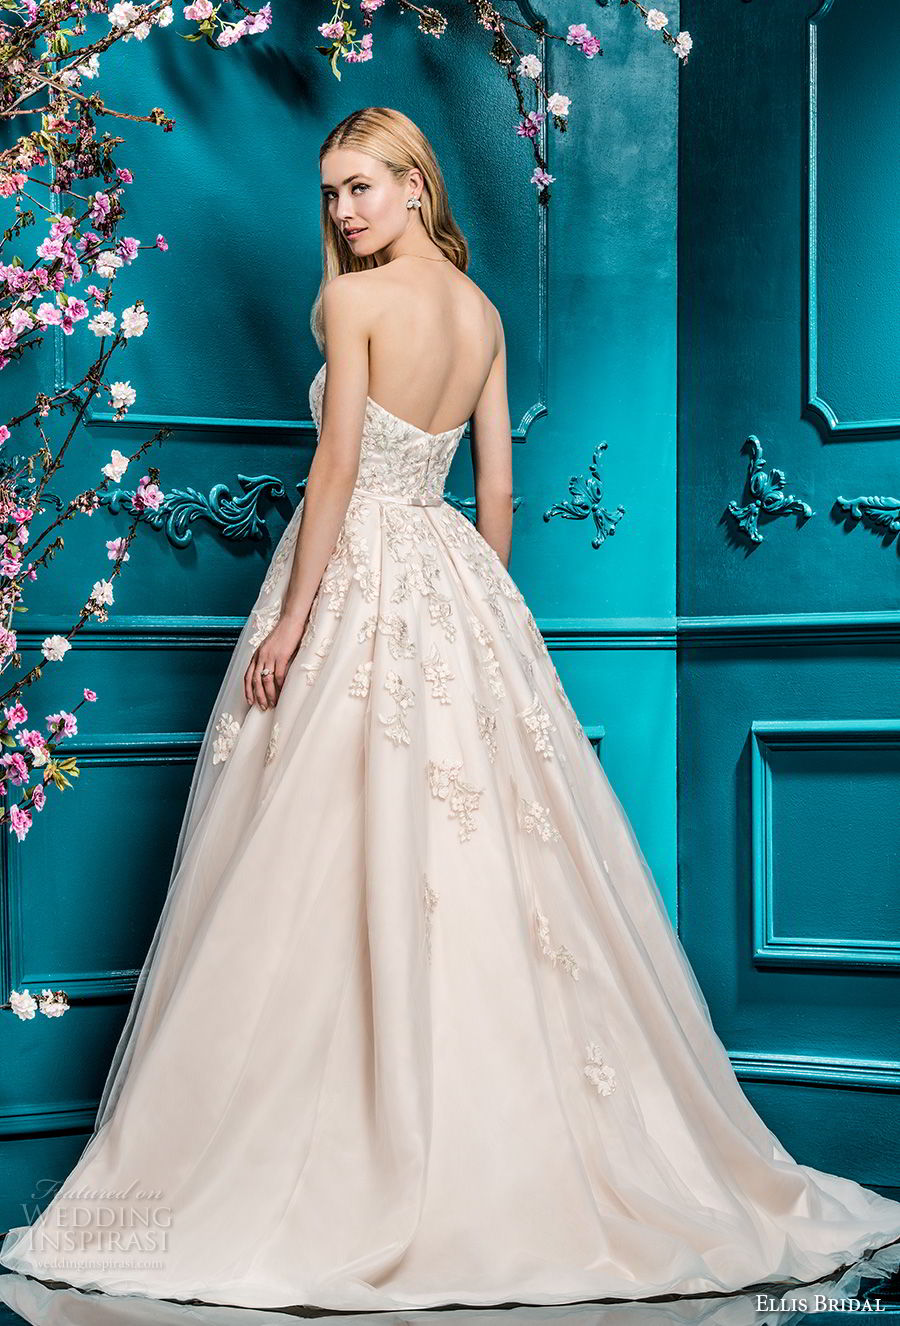 ellis bridals 2018 strapless sweetheart neckline heavily embellished bodice romantic a line wedding dress with pockets chapel train (1) bv